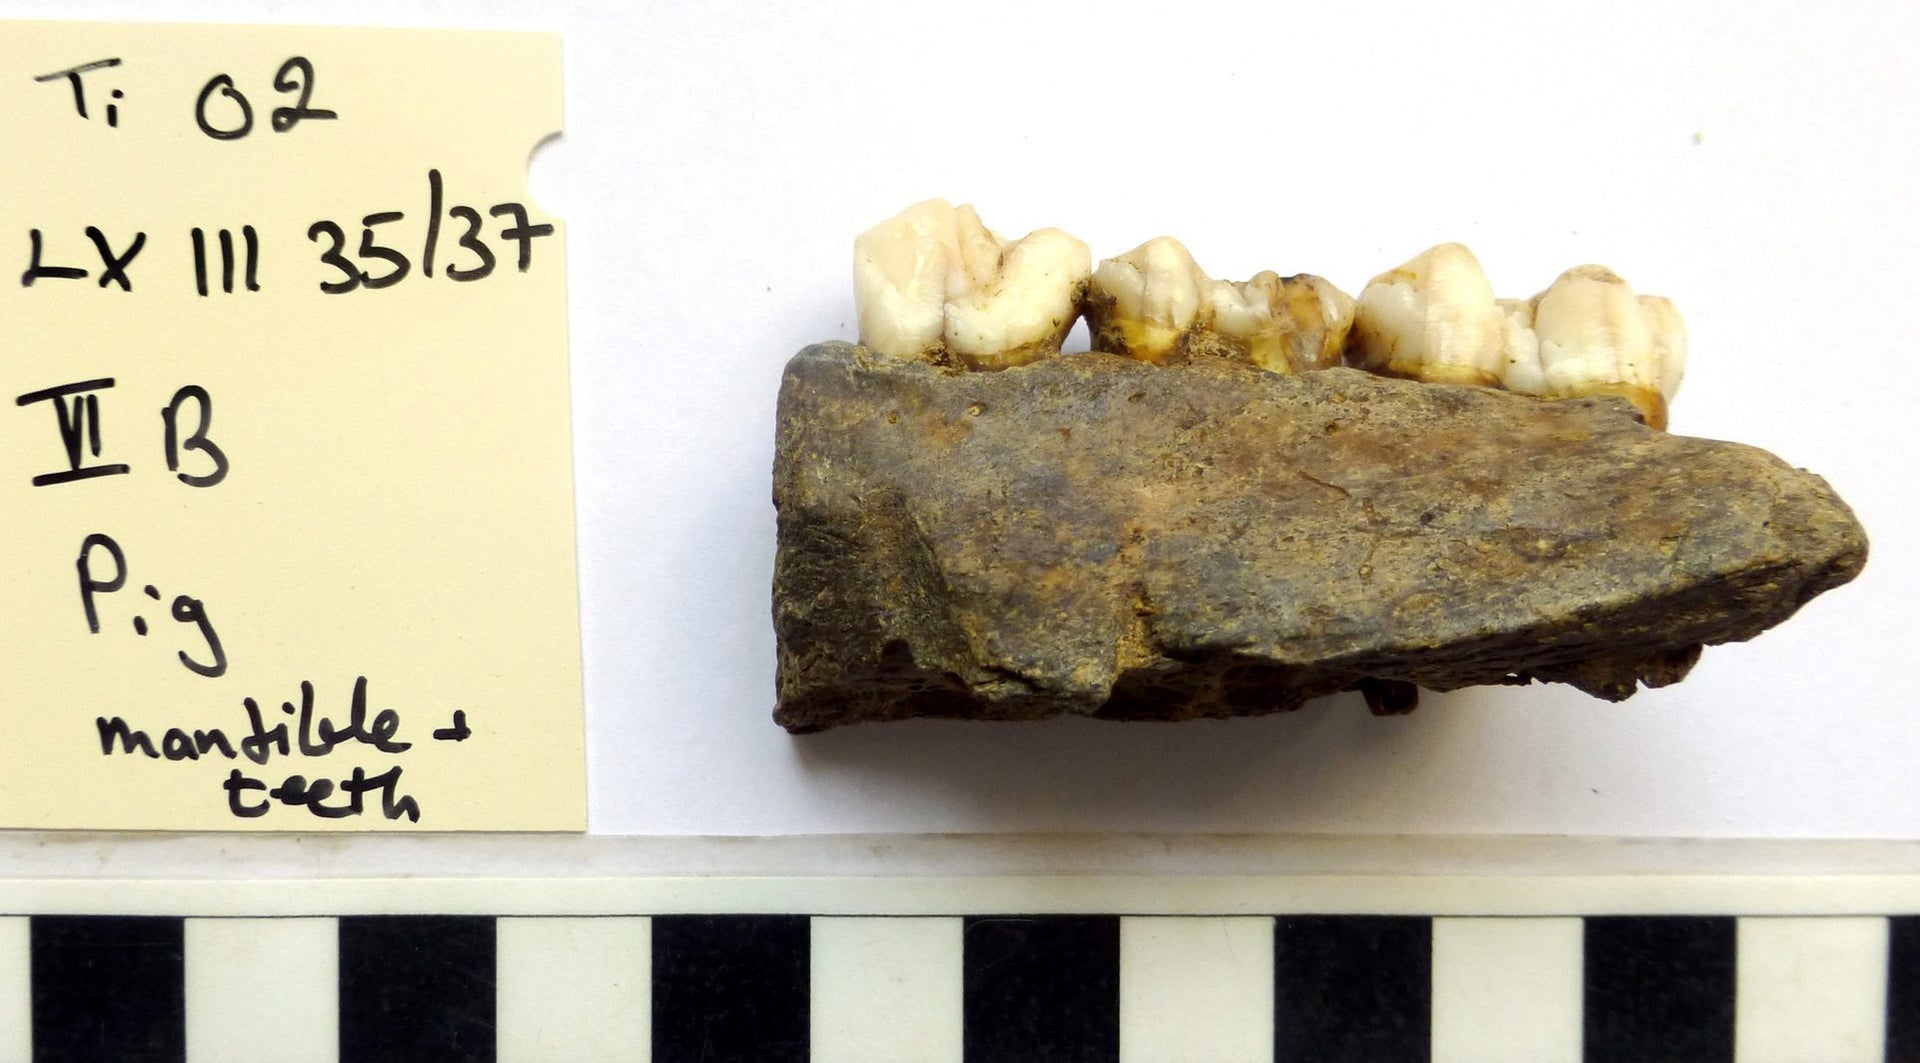 Mandible of ancient pig, about 3,000 years old